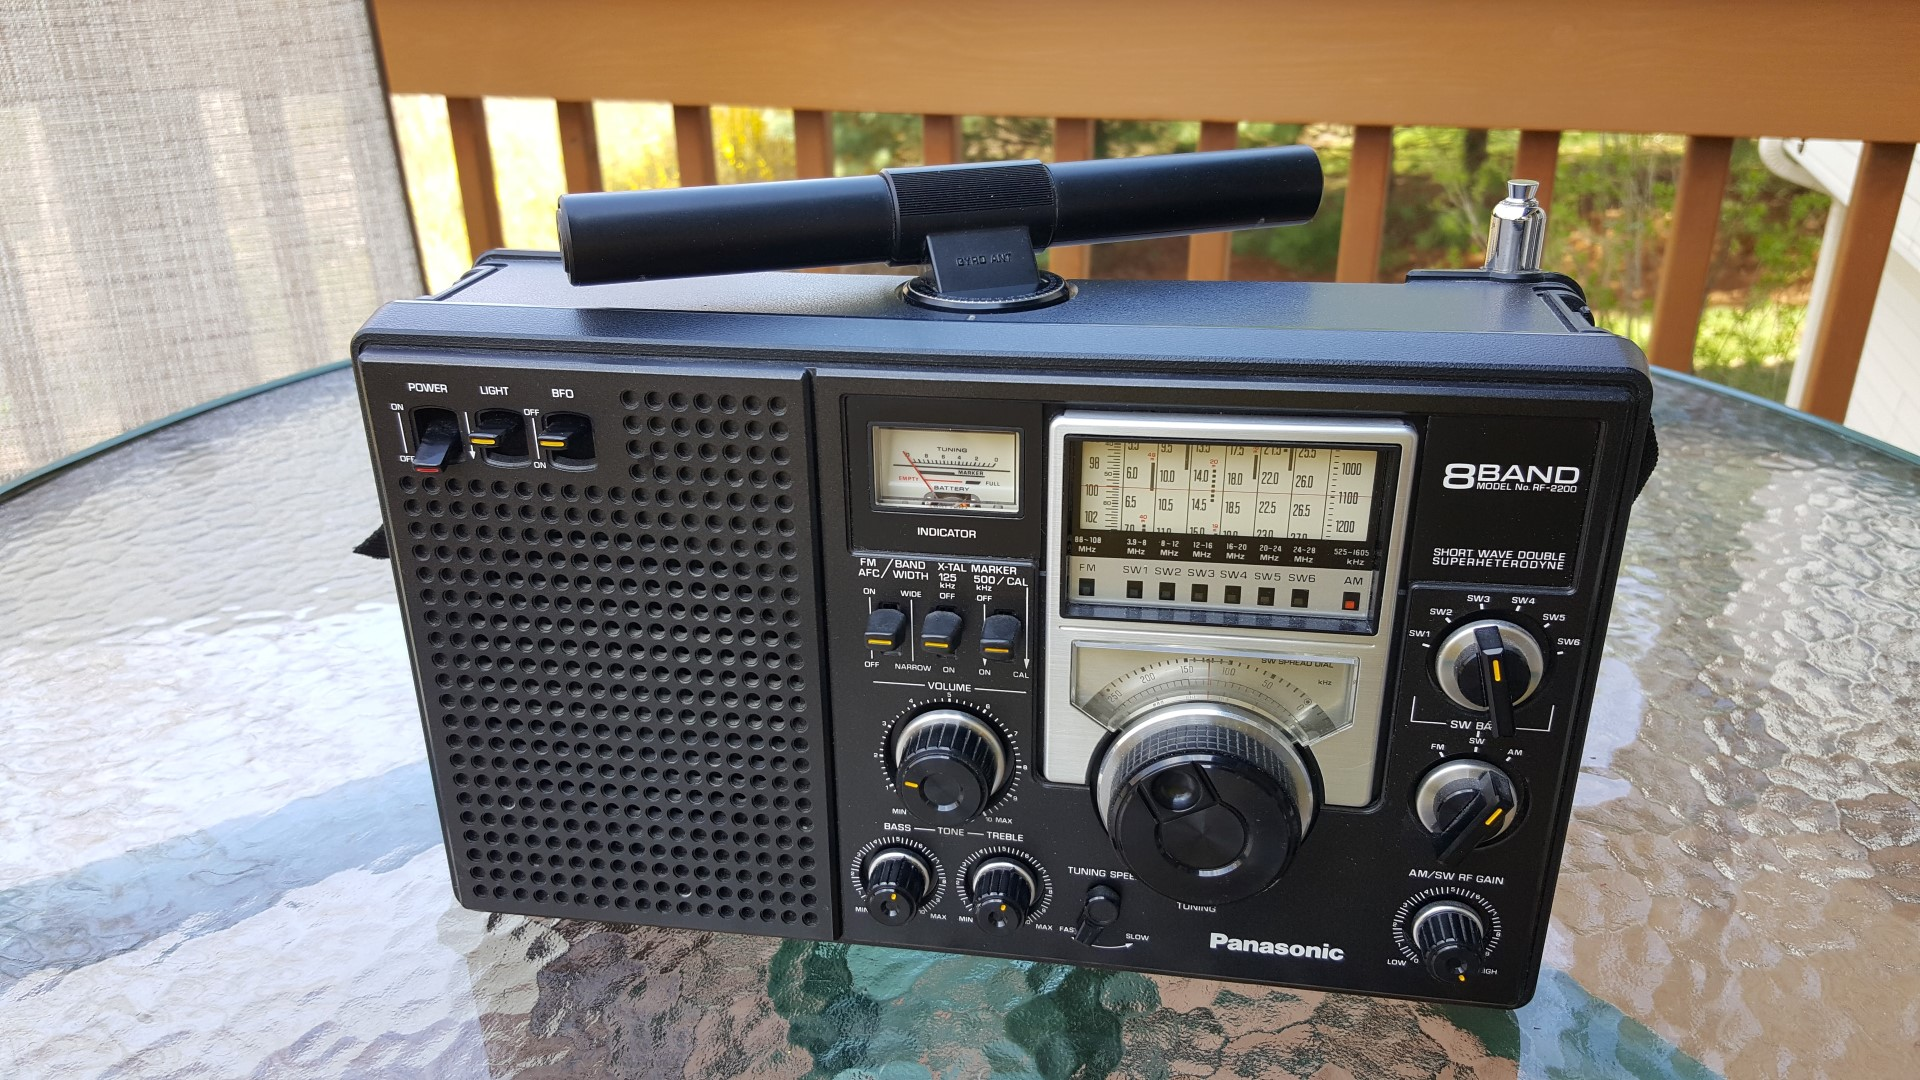 Panasonic Rf 2200 Radiojayallen 3 Way Switch The Quest To Find And Restore